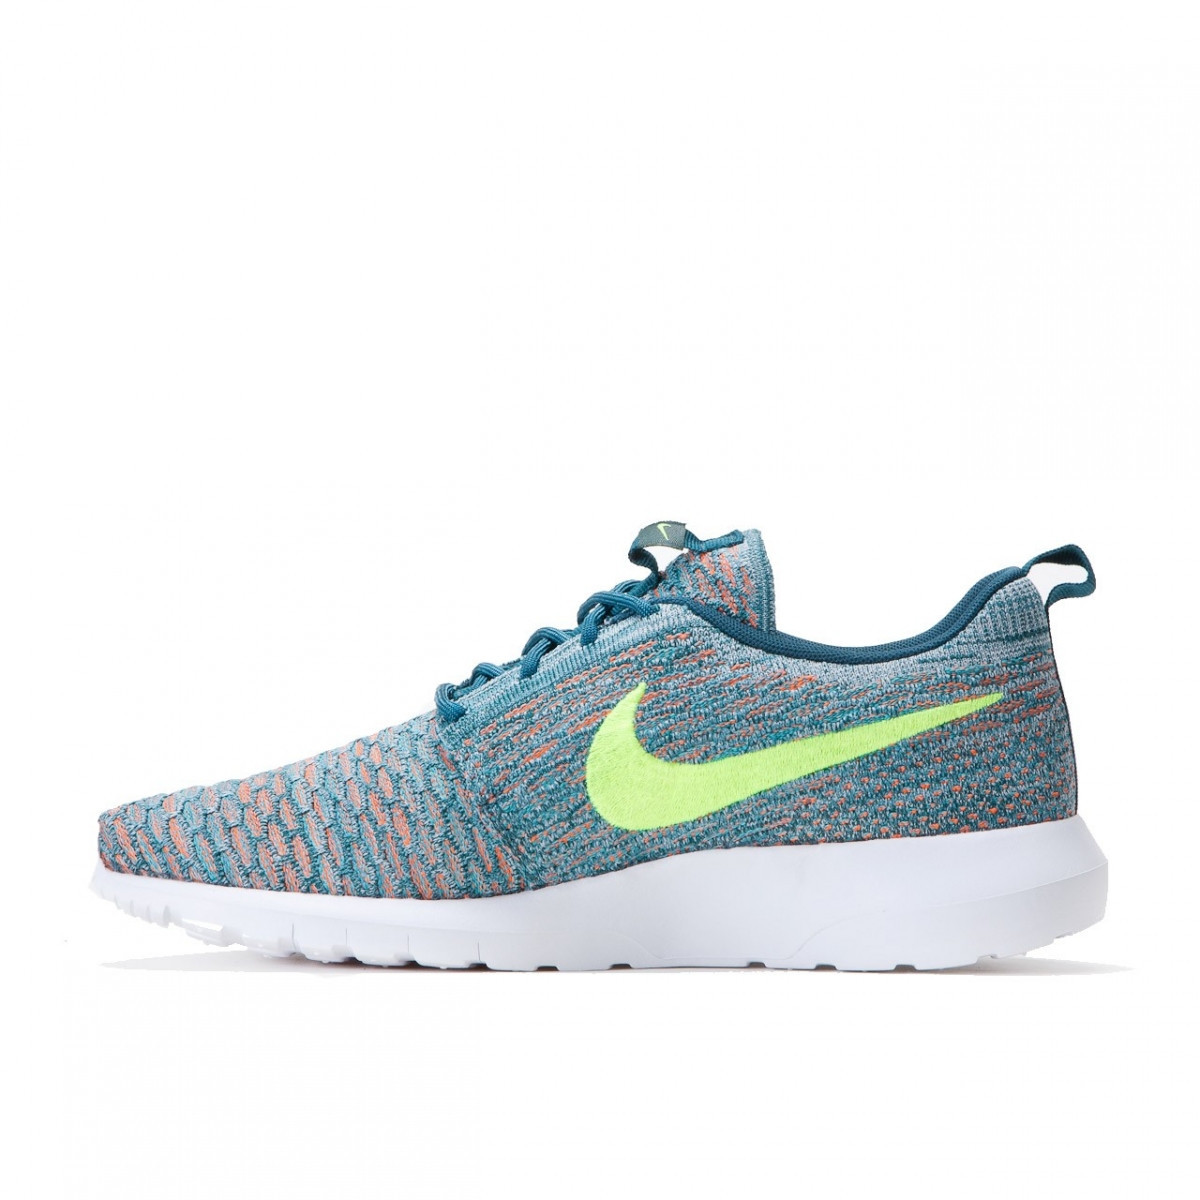 ebcdc61fb7d3 ... discount code for nike roshe run flyknit mineral teal soulmarket 0a482  a7847